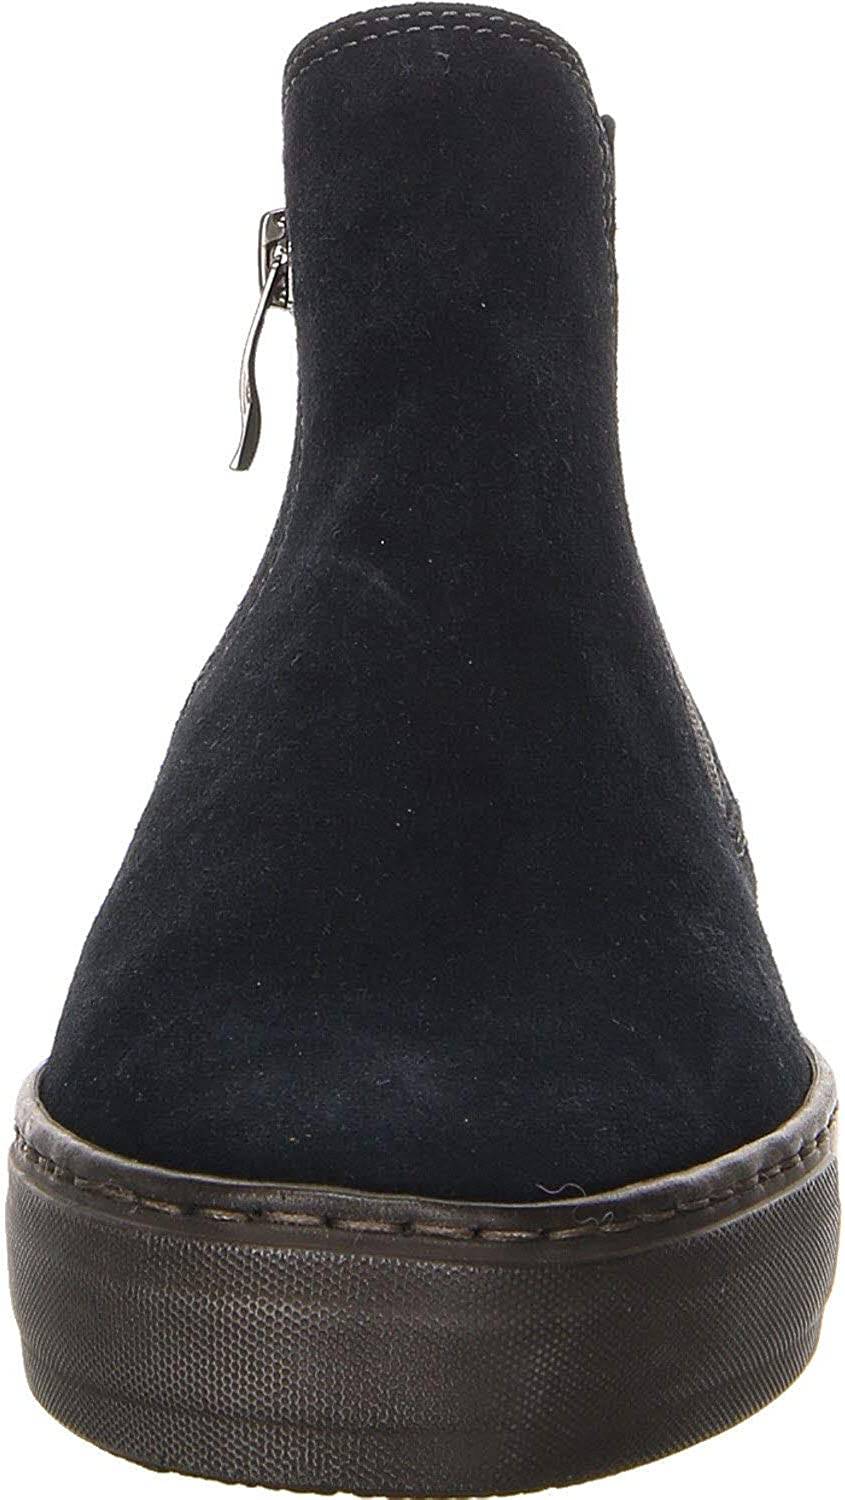 ARA 47485-62 Court Boot Wide FIT Navy Nubuck Womens Chelsea Boots Blue